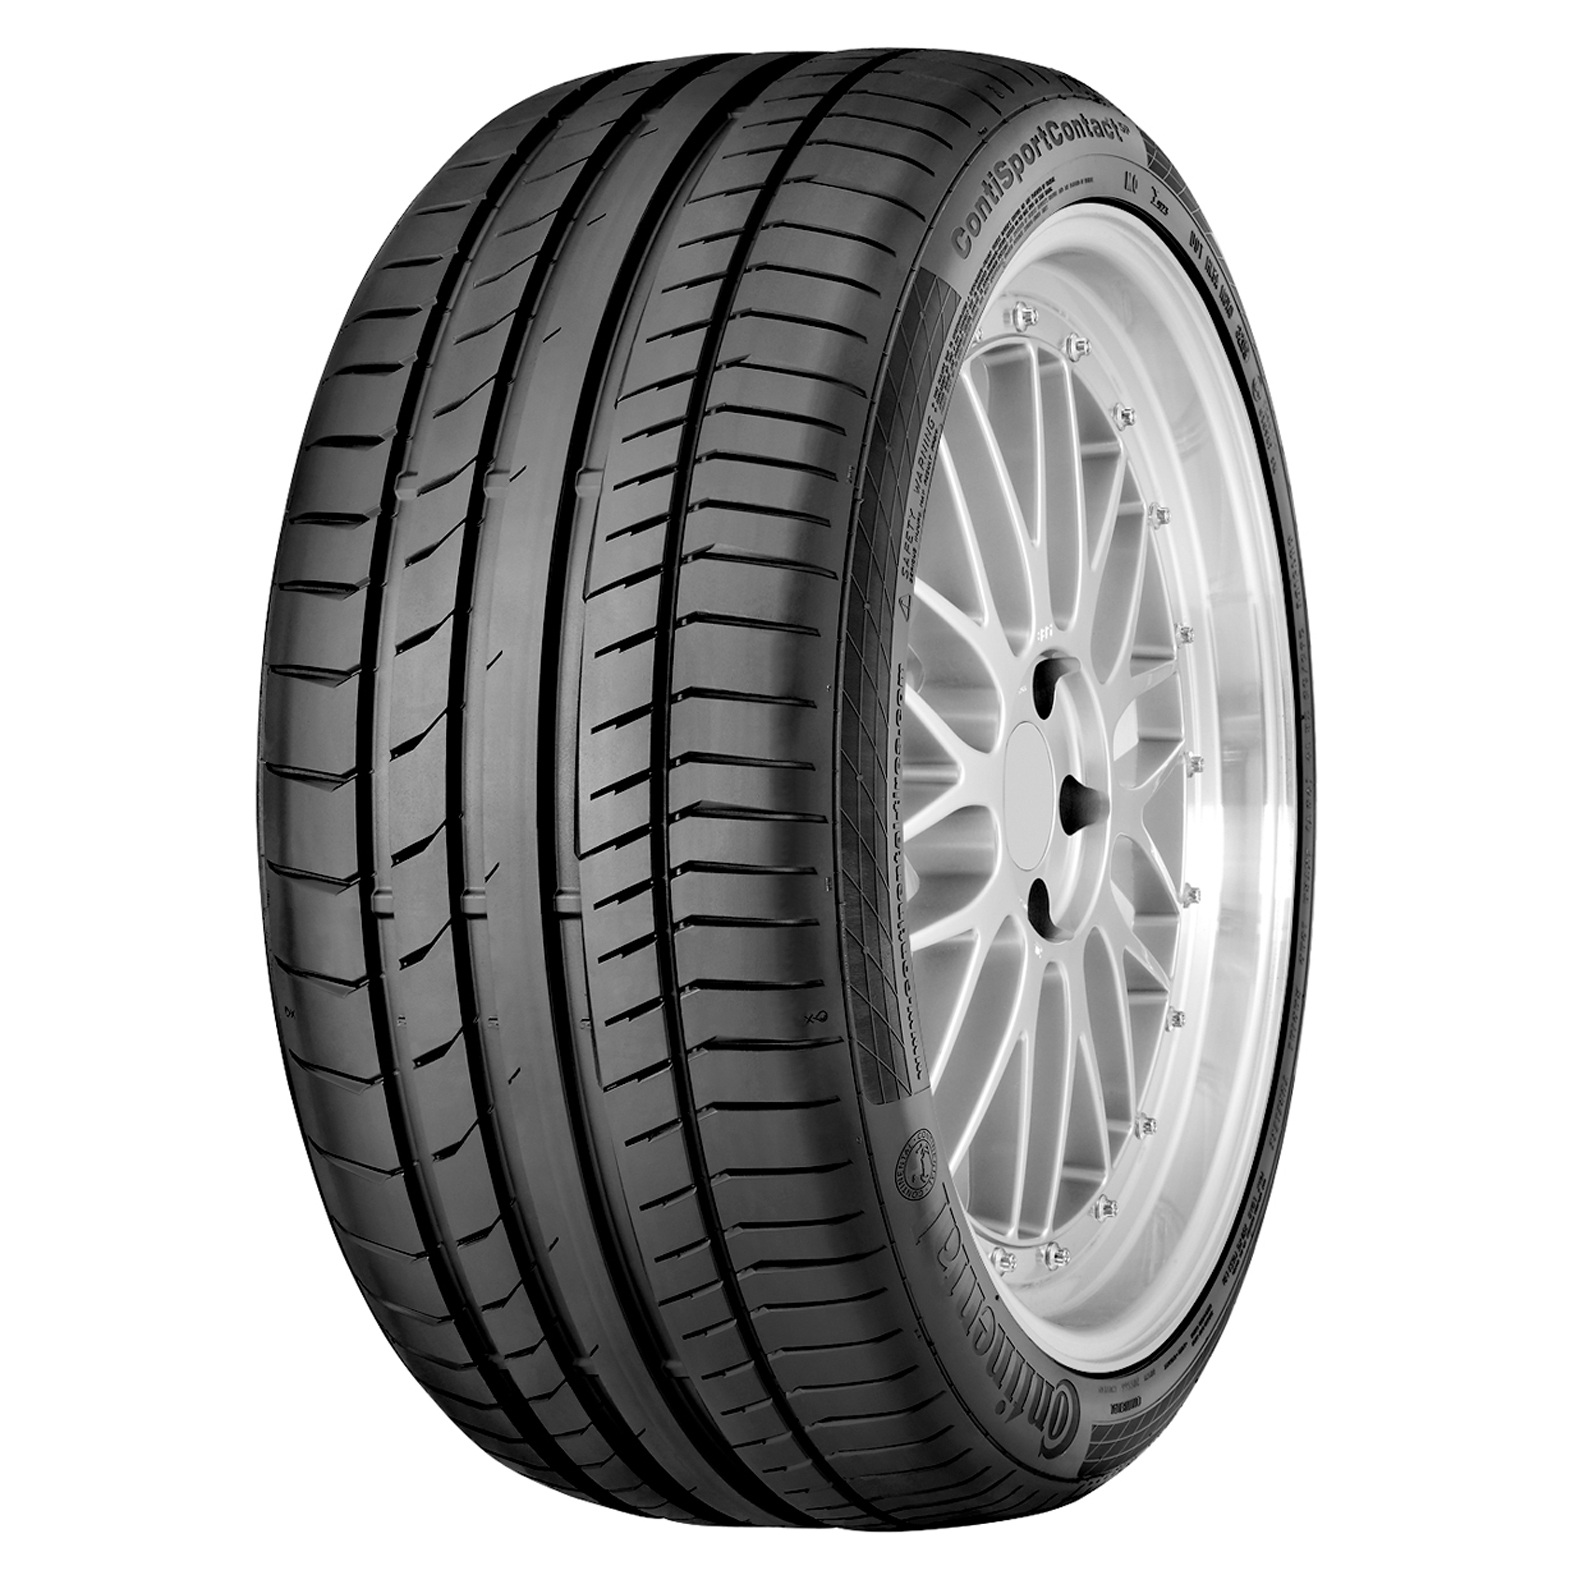 Continental CONTISPORTCONTACT 5P  tire - angle